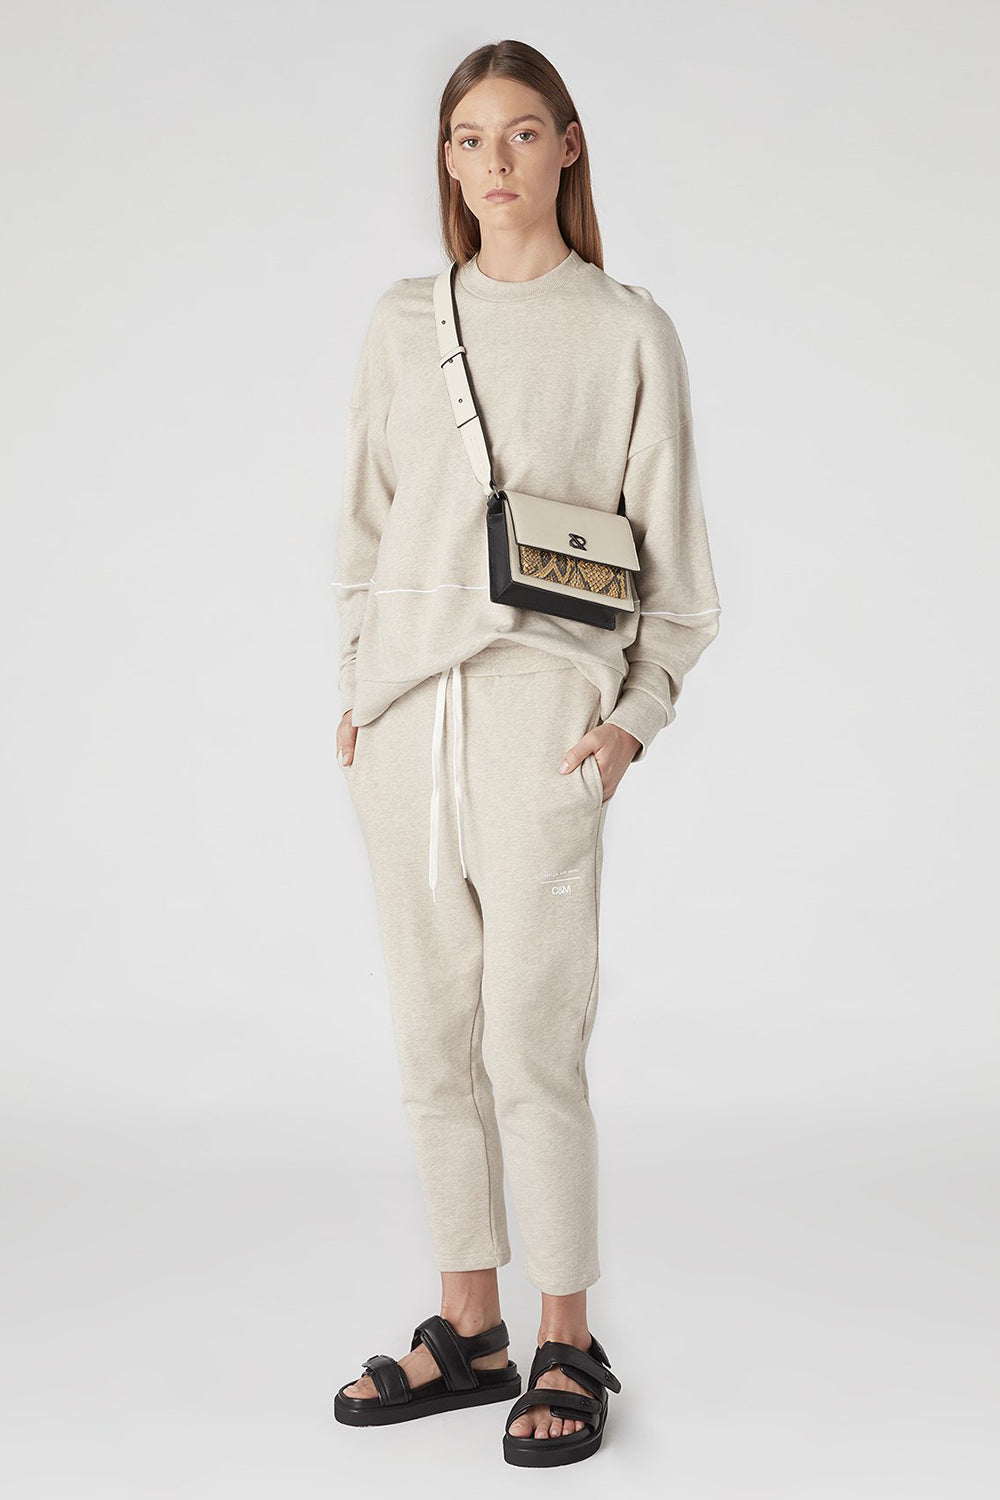 Camilla And Marc / Prosper Track Pant / Oatmeal